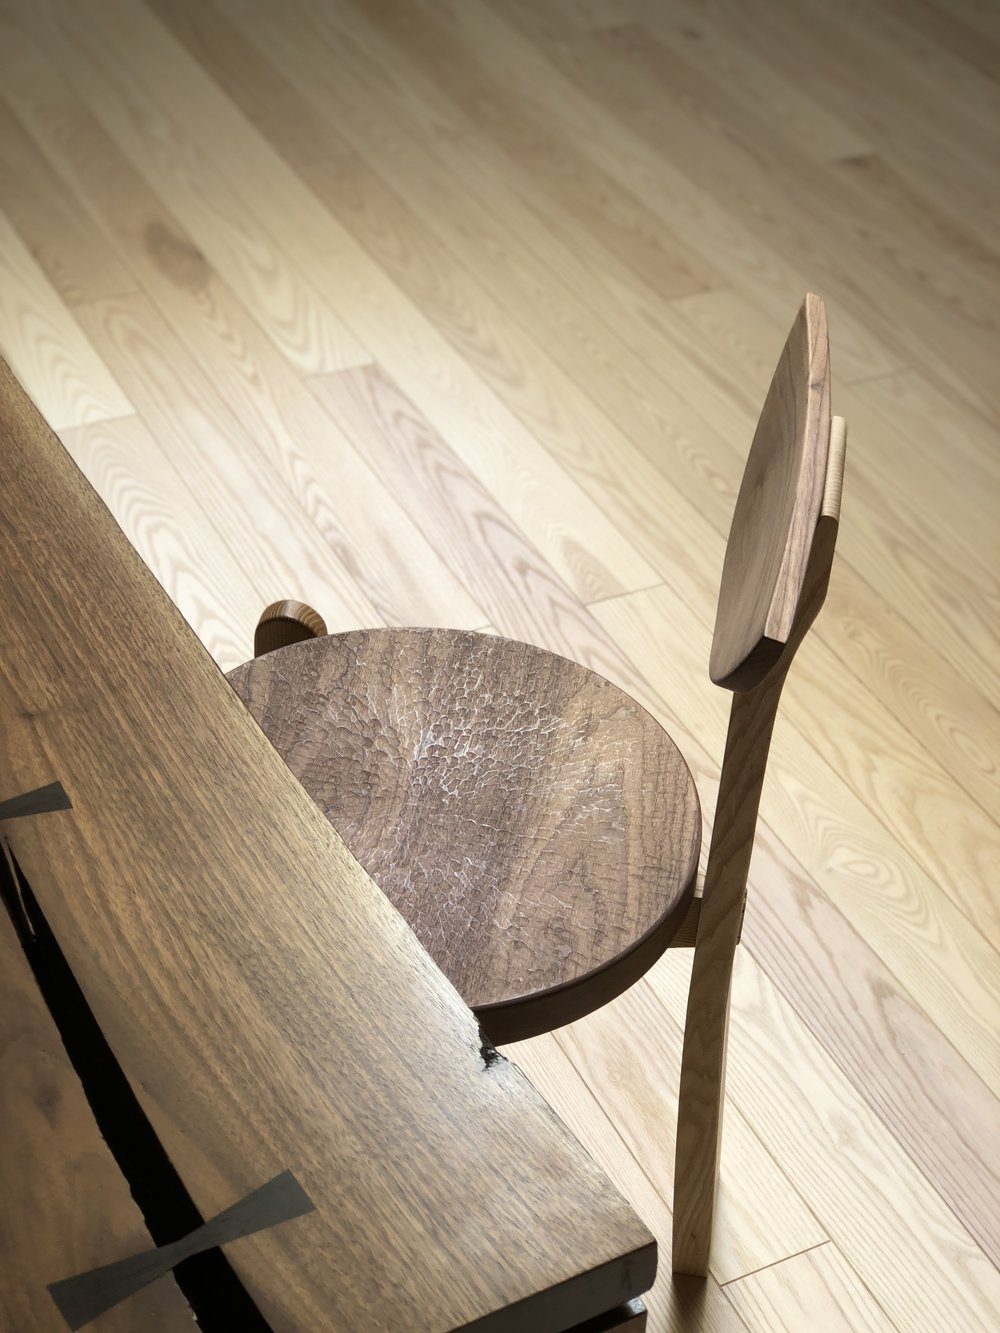 - Our use of these tools and techniques is a result of time spent working with them and alongside the Japanese craftsmen who use themFine woodworking is still commonplace throughout Japan, and our time there has inspired us to emulate their meticulousness and dedication to their work[ pictured - Walnut Dining Table and Maru Chair ]